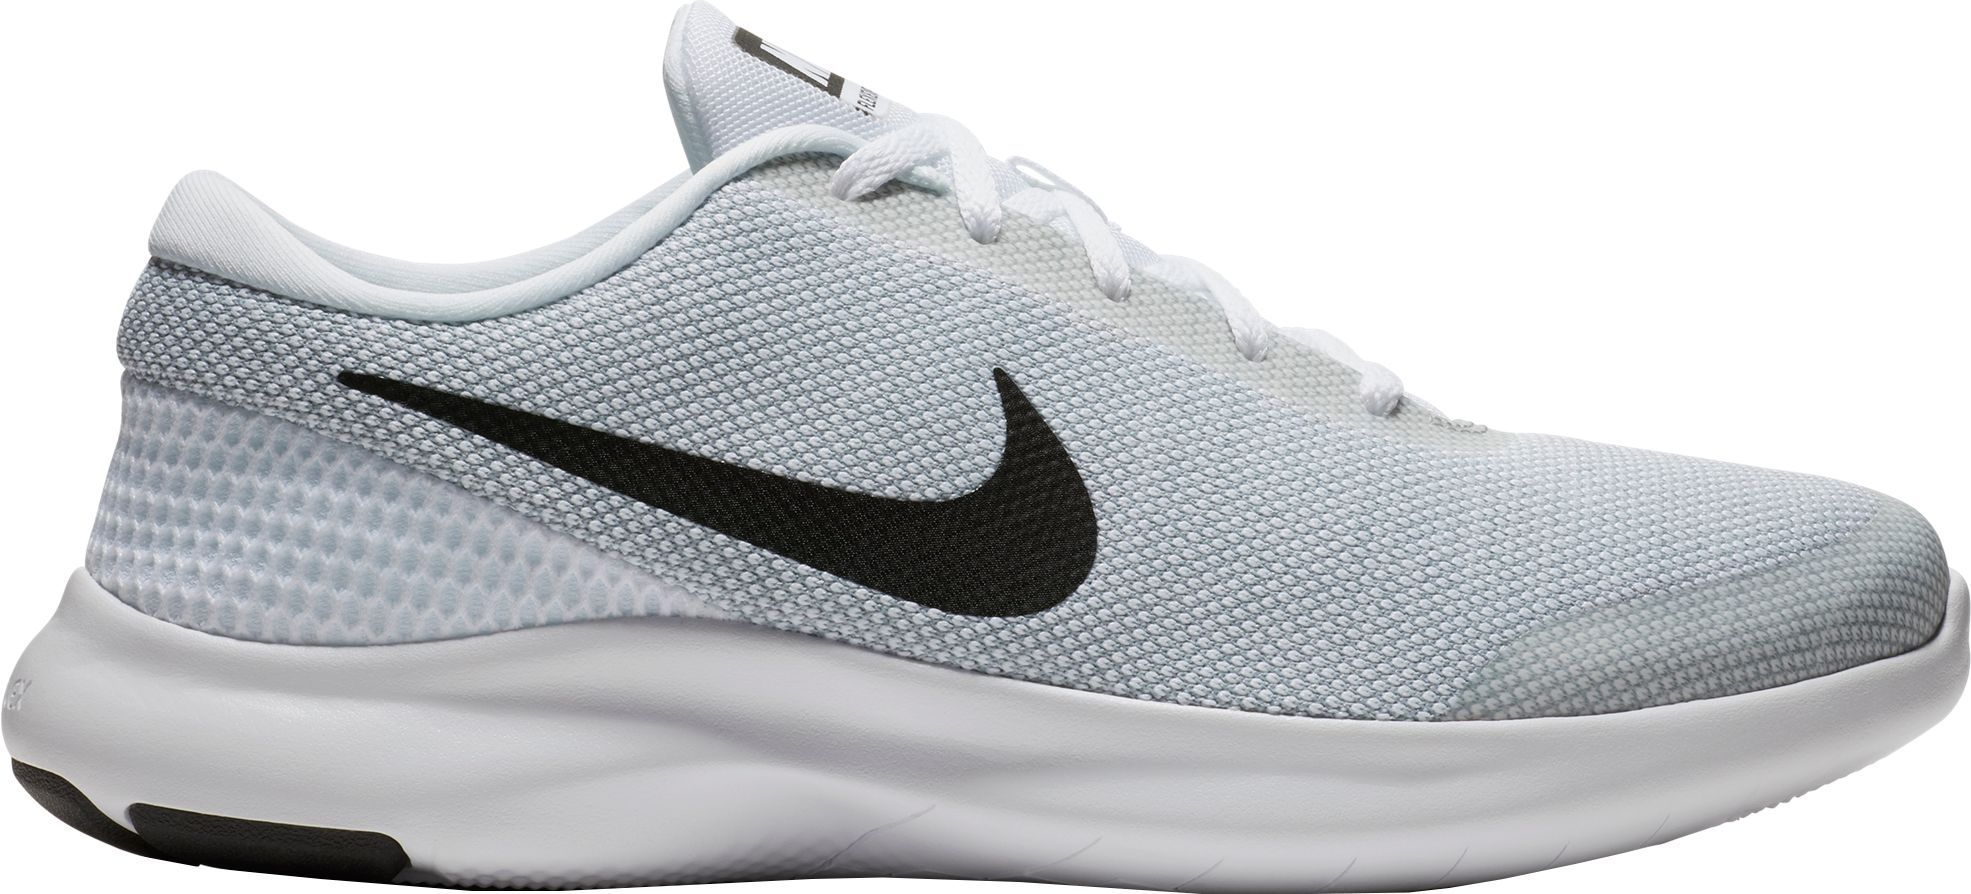 Nike Men's Flex Experience RN 7 Running Shoes, Size: 11.5